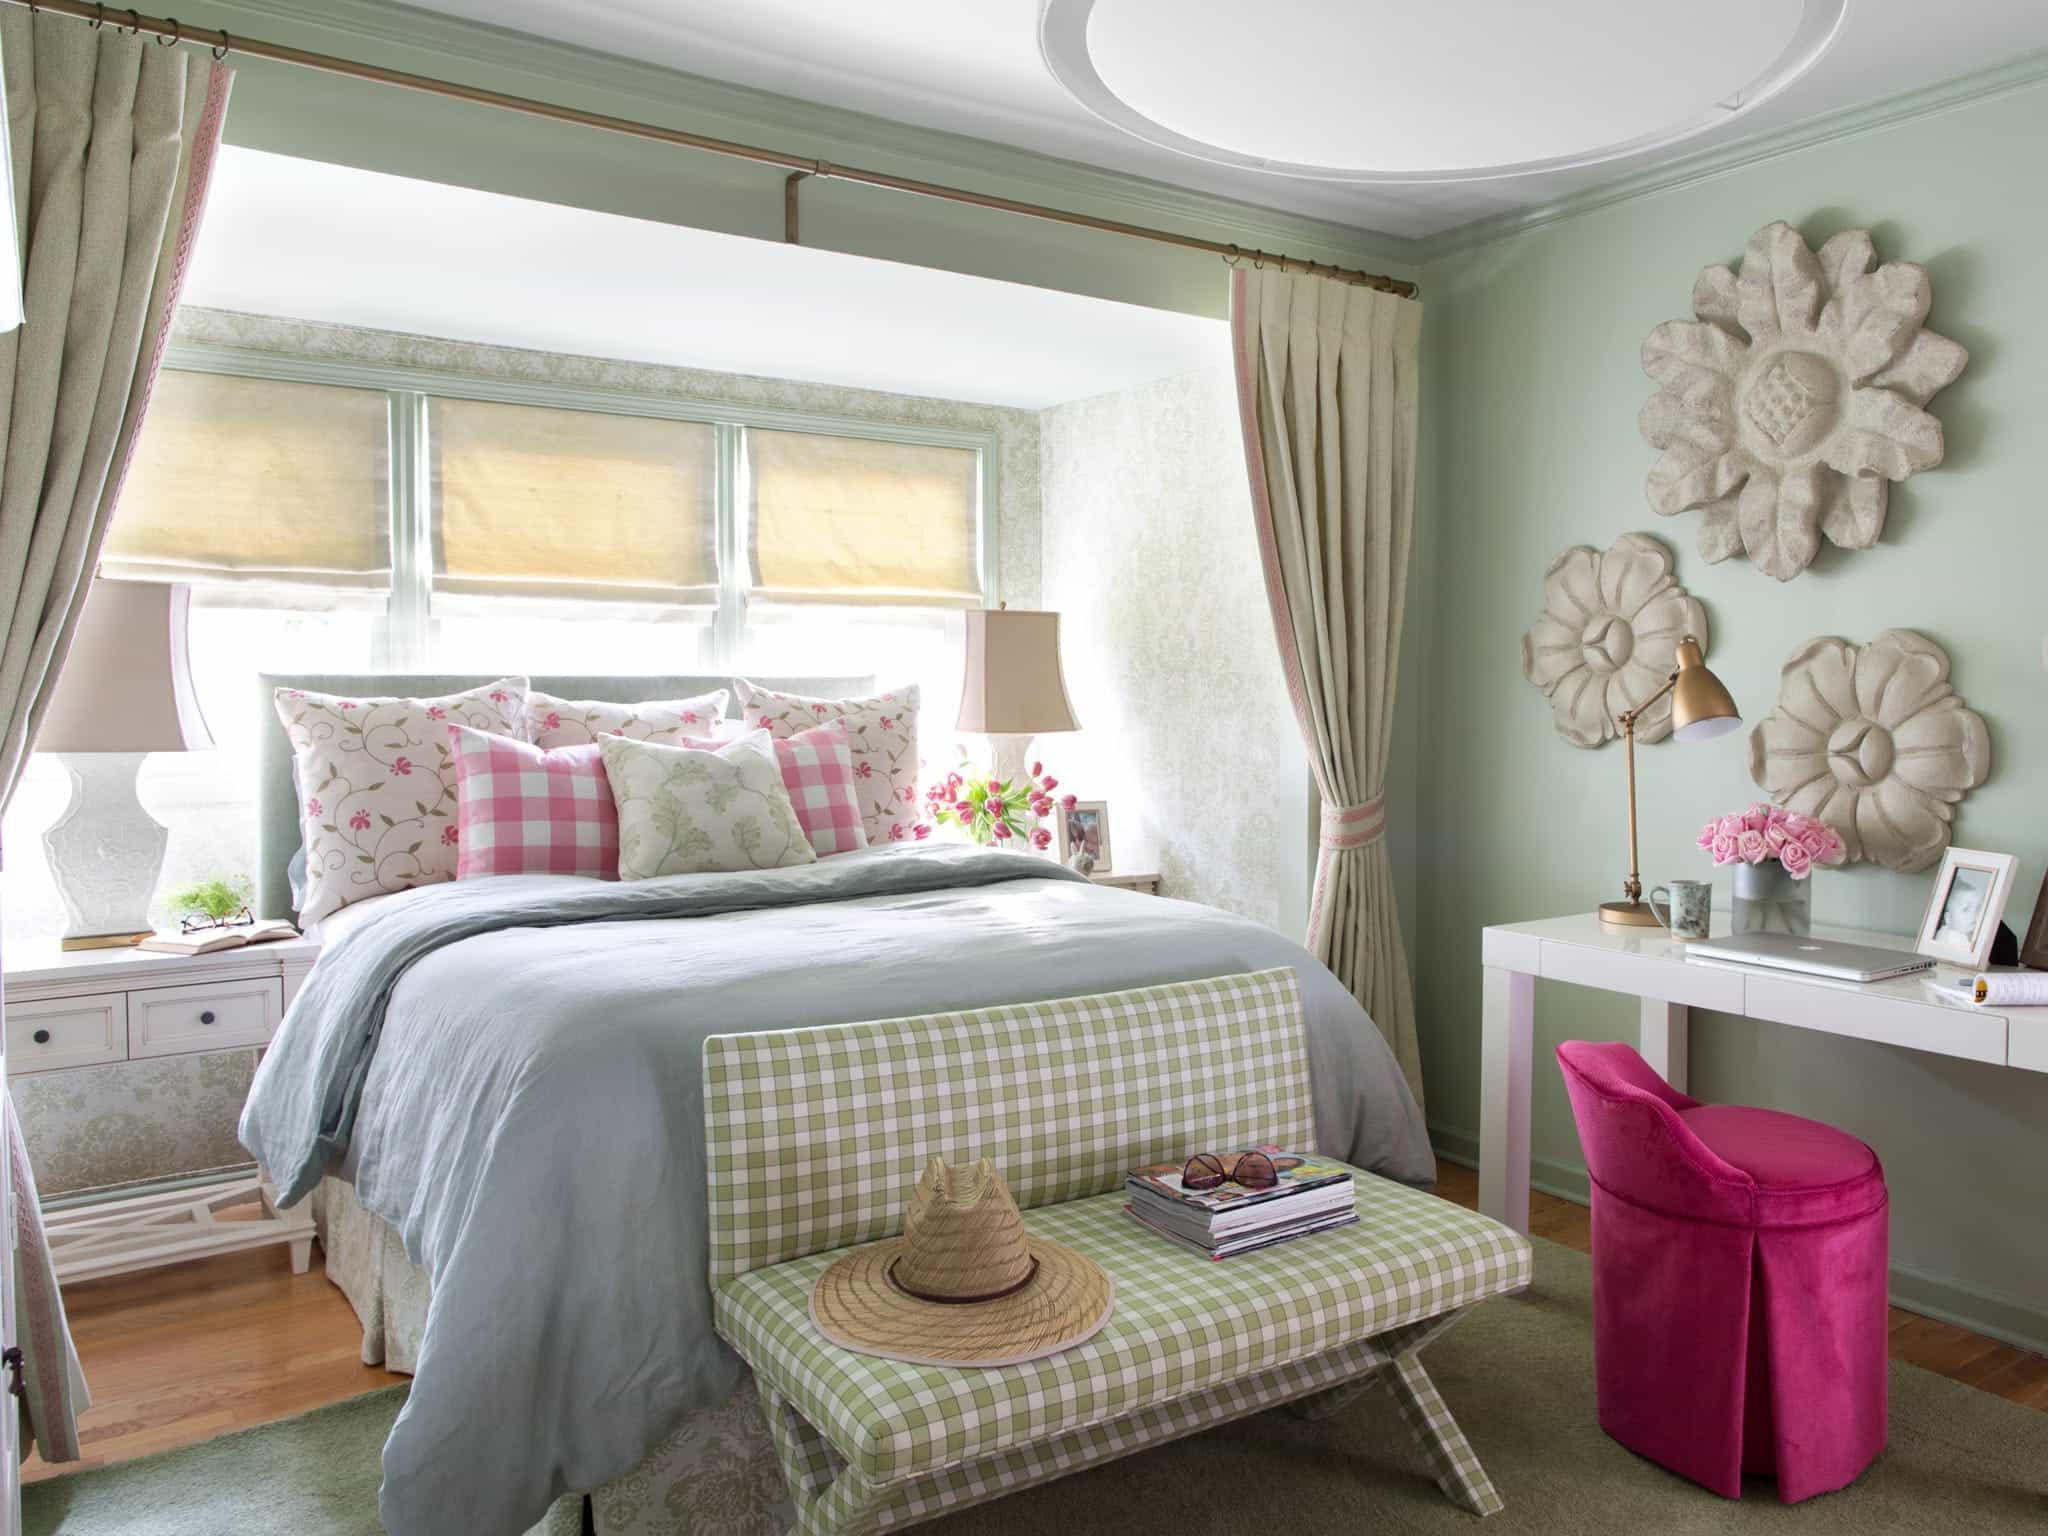 Feminine Cottage Style Bedroom  (Image 14 of 28)